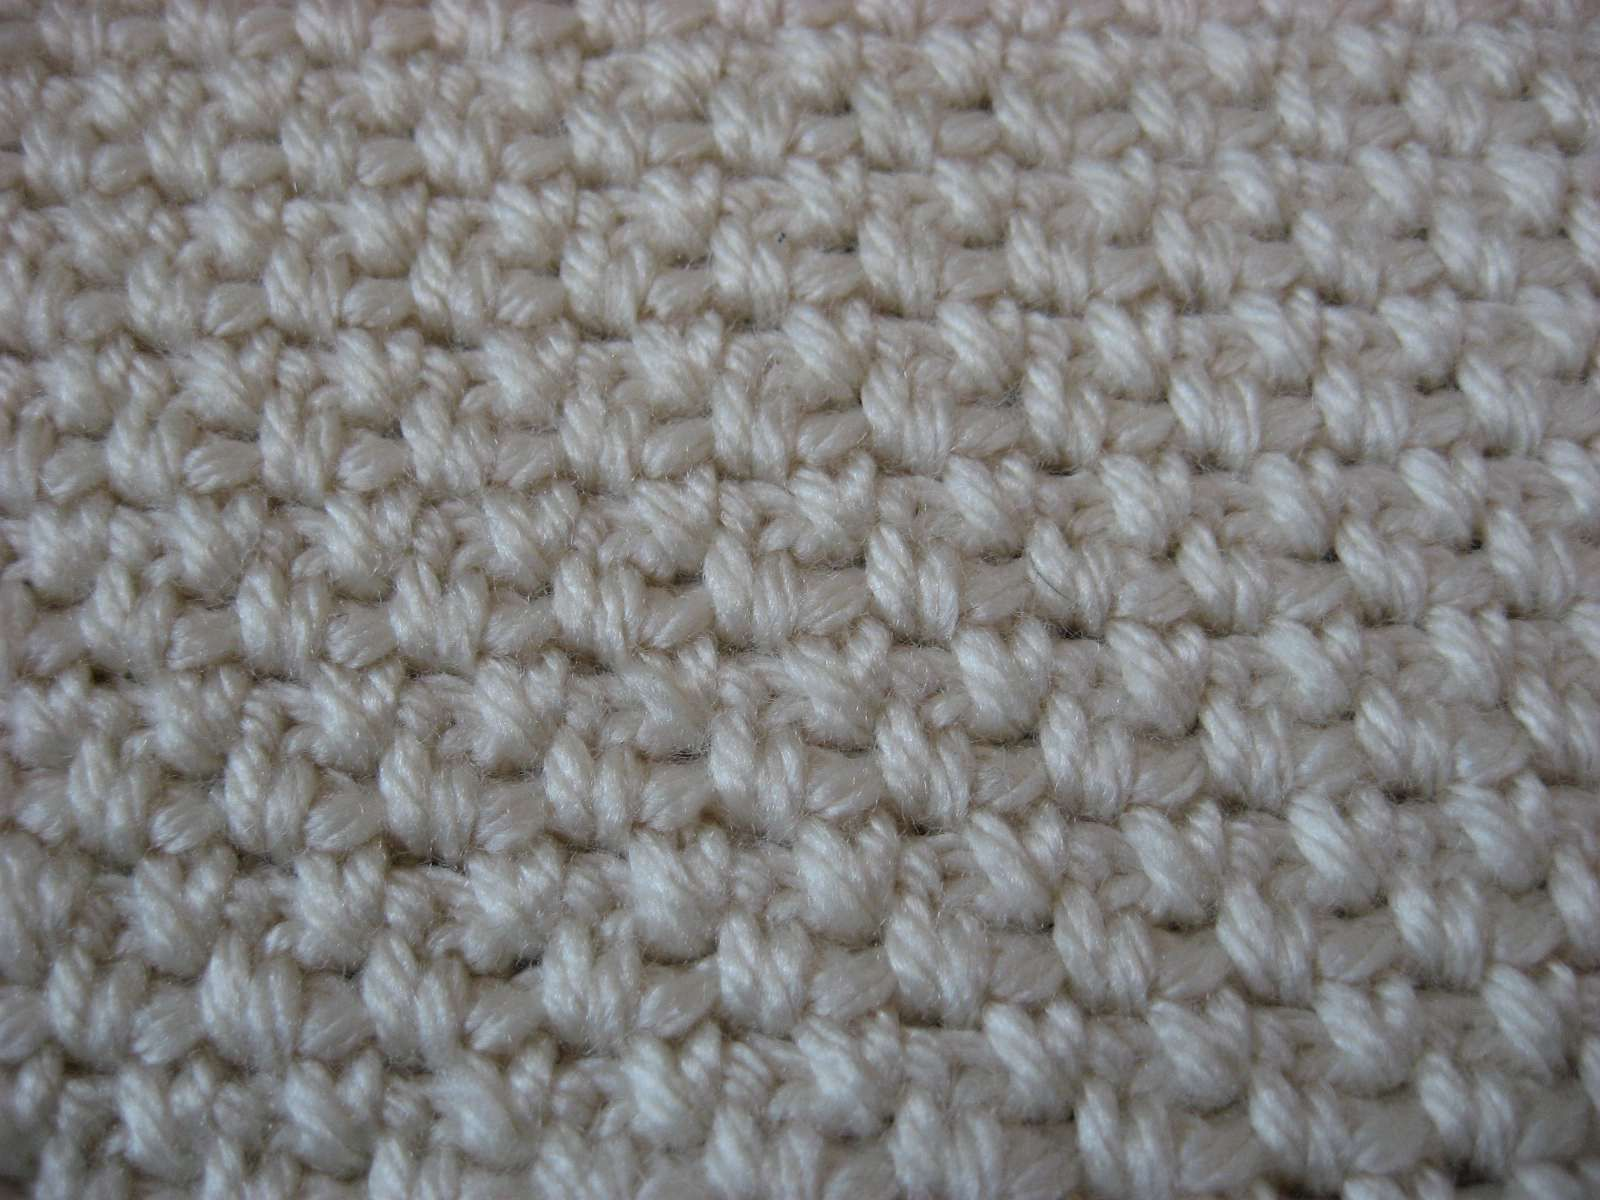 crochet+stitches | Now on to the video... | beaded things ...